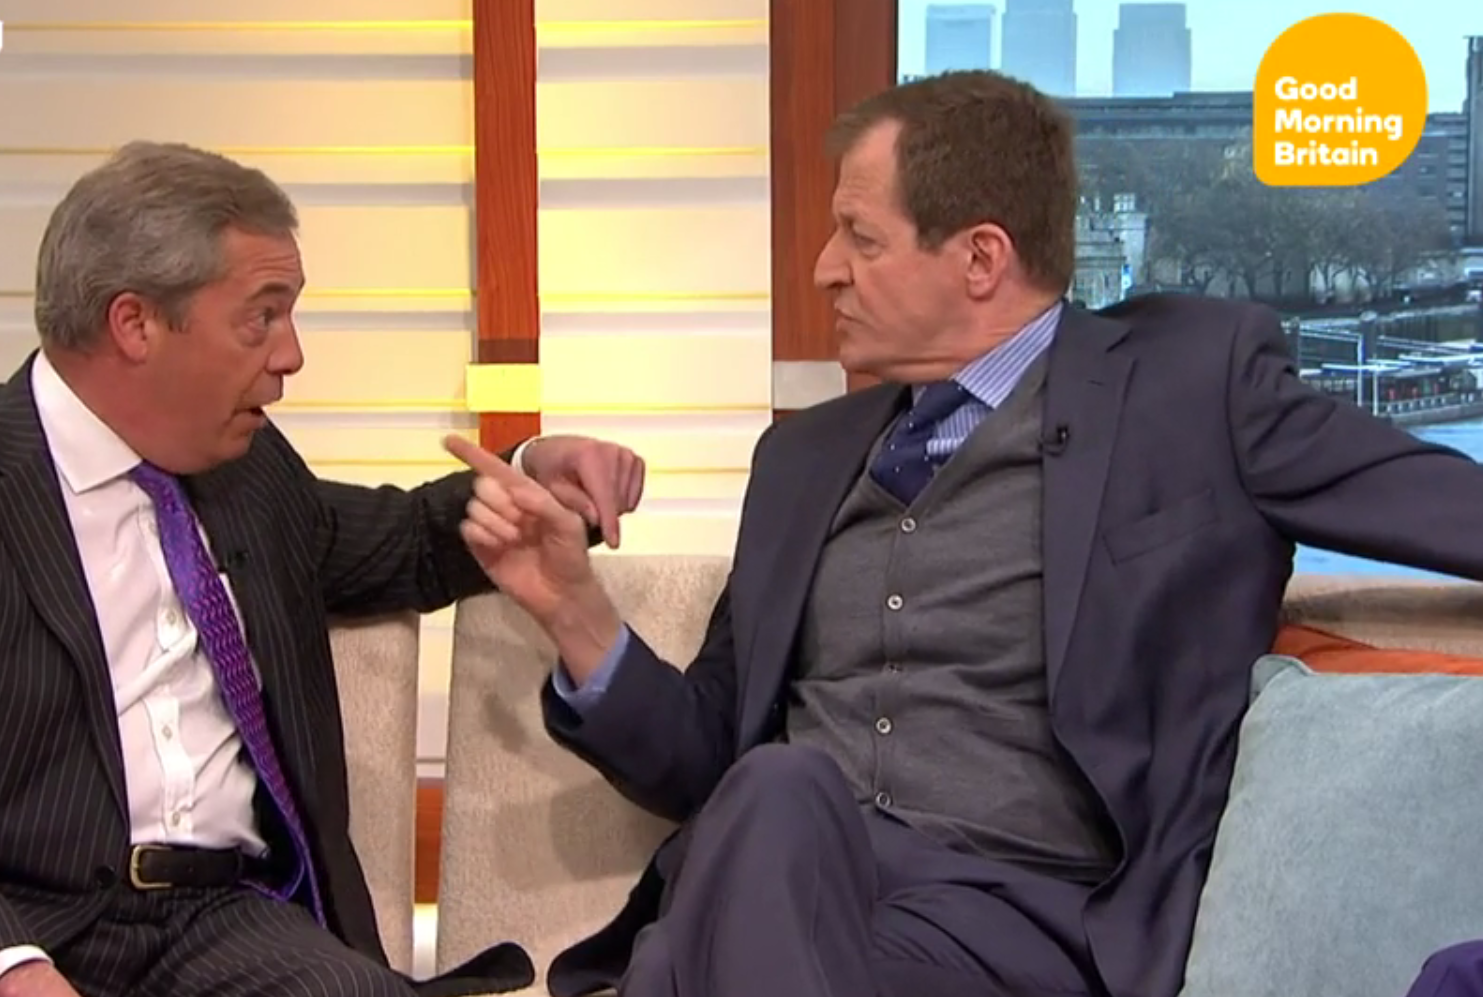 Nigel Farage and Alastair Campbell